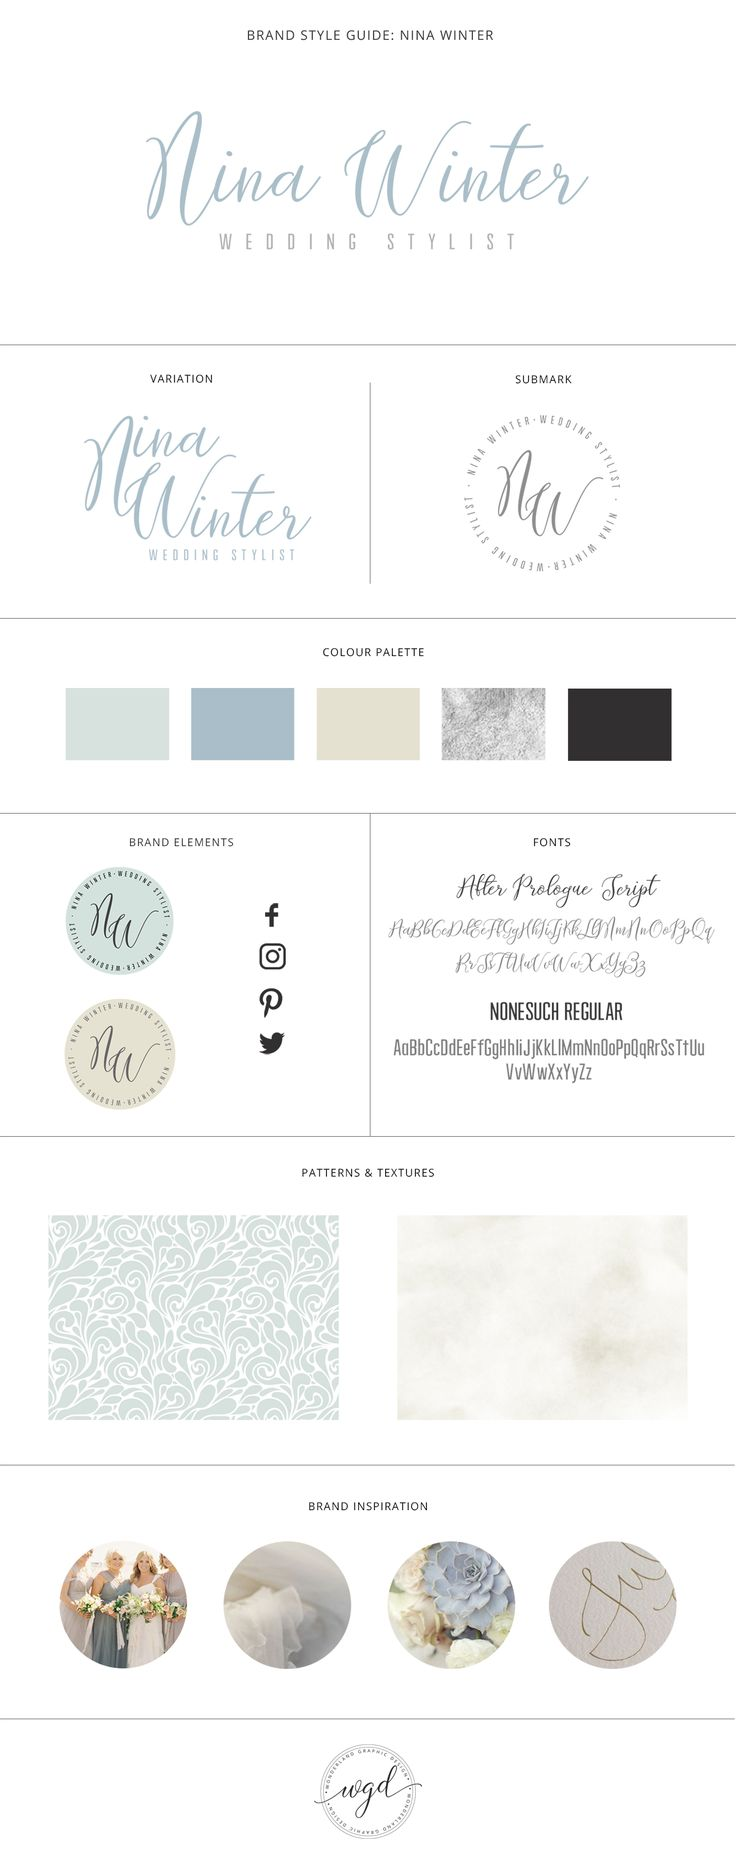 Brand Style Board for Nina Winter | This wedding styling business got a great rebrand with a beautiful dusty, dusky blue and soft grey and cream colour palette. The logo with simple and clean with creative alternatives. If you require branding services for your wedding business, click through to find out more. Wonderland Graphic Design - Styling your way to a better business!